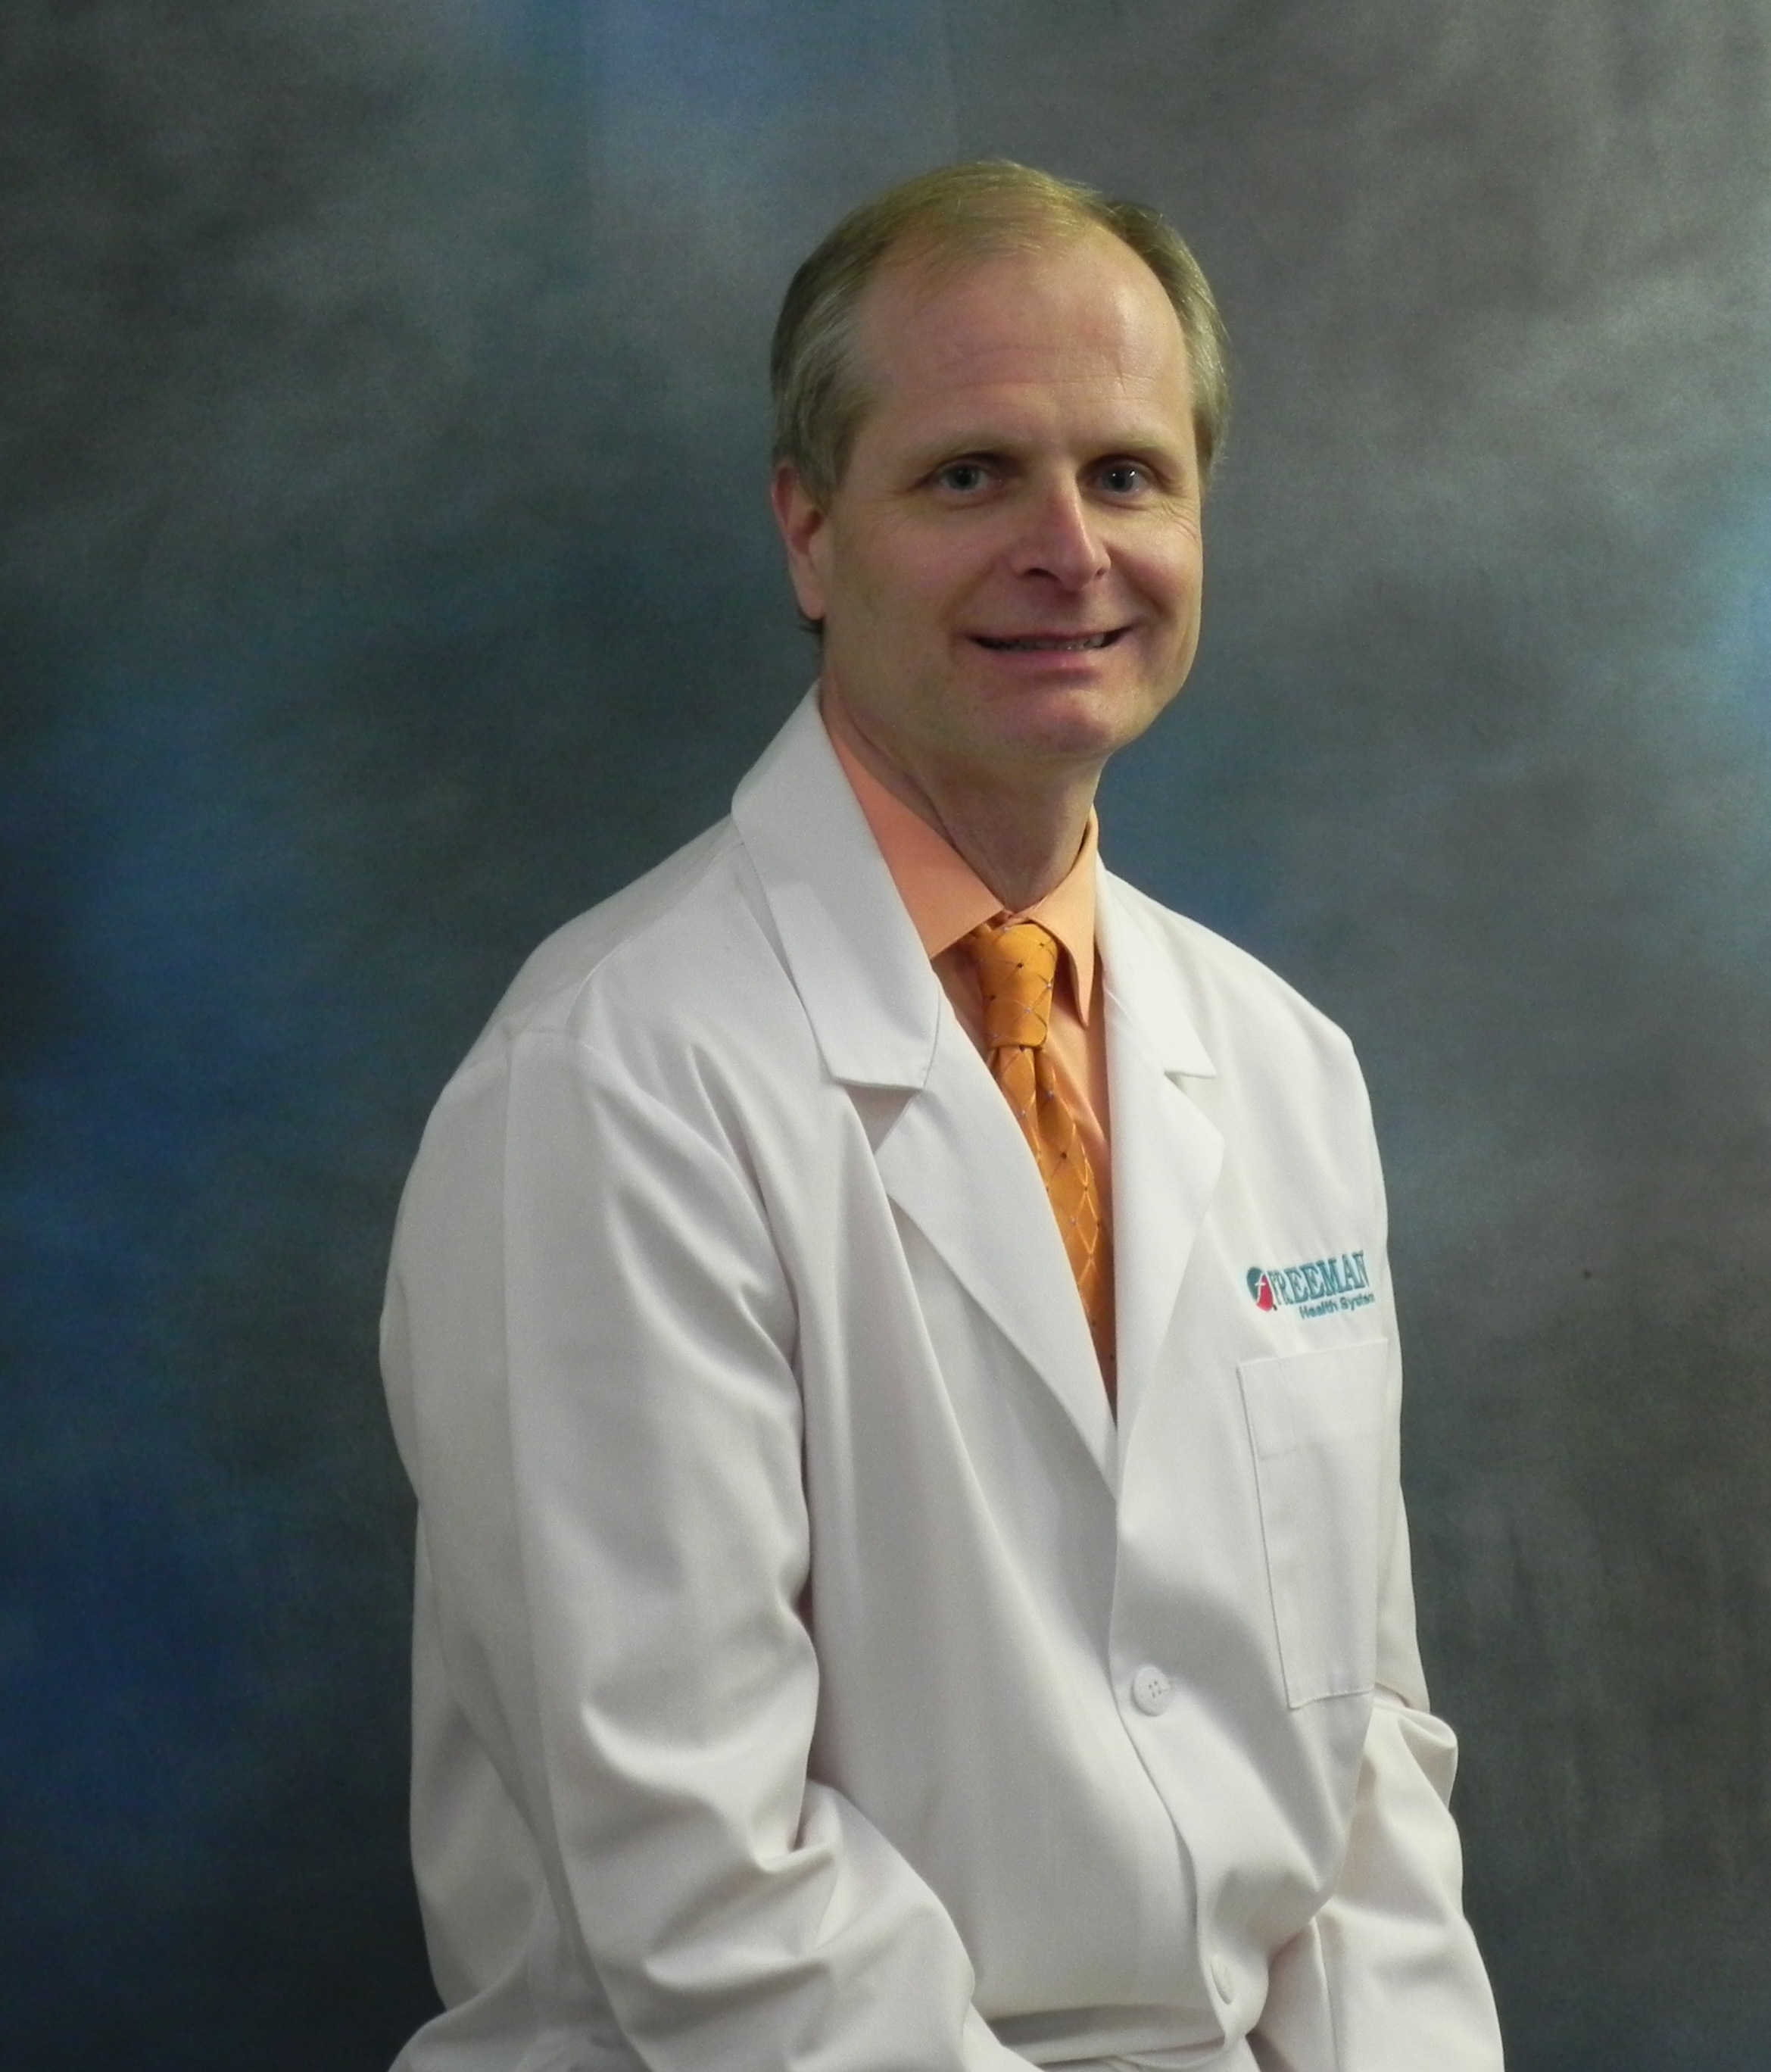 Mark J. Jarek, MD